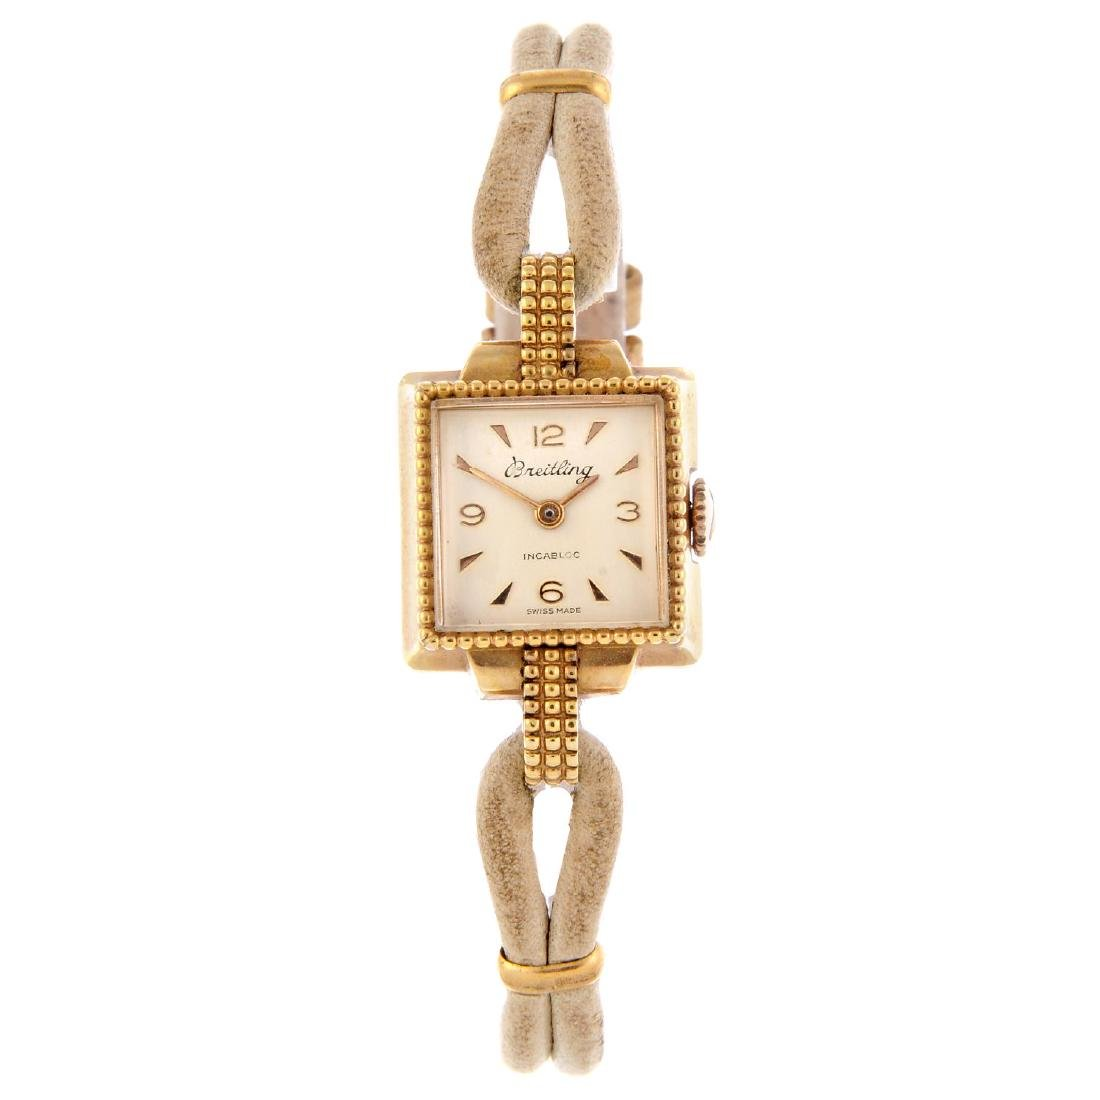 BREITLING - a lady's bracelet watch. Gold plated case